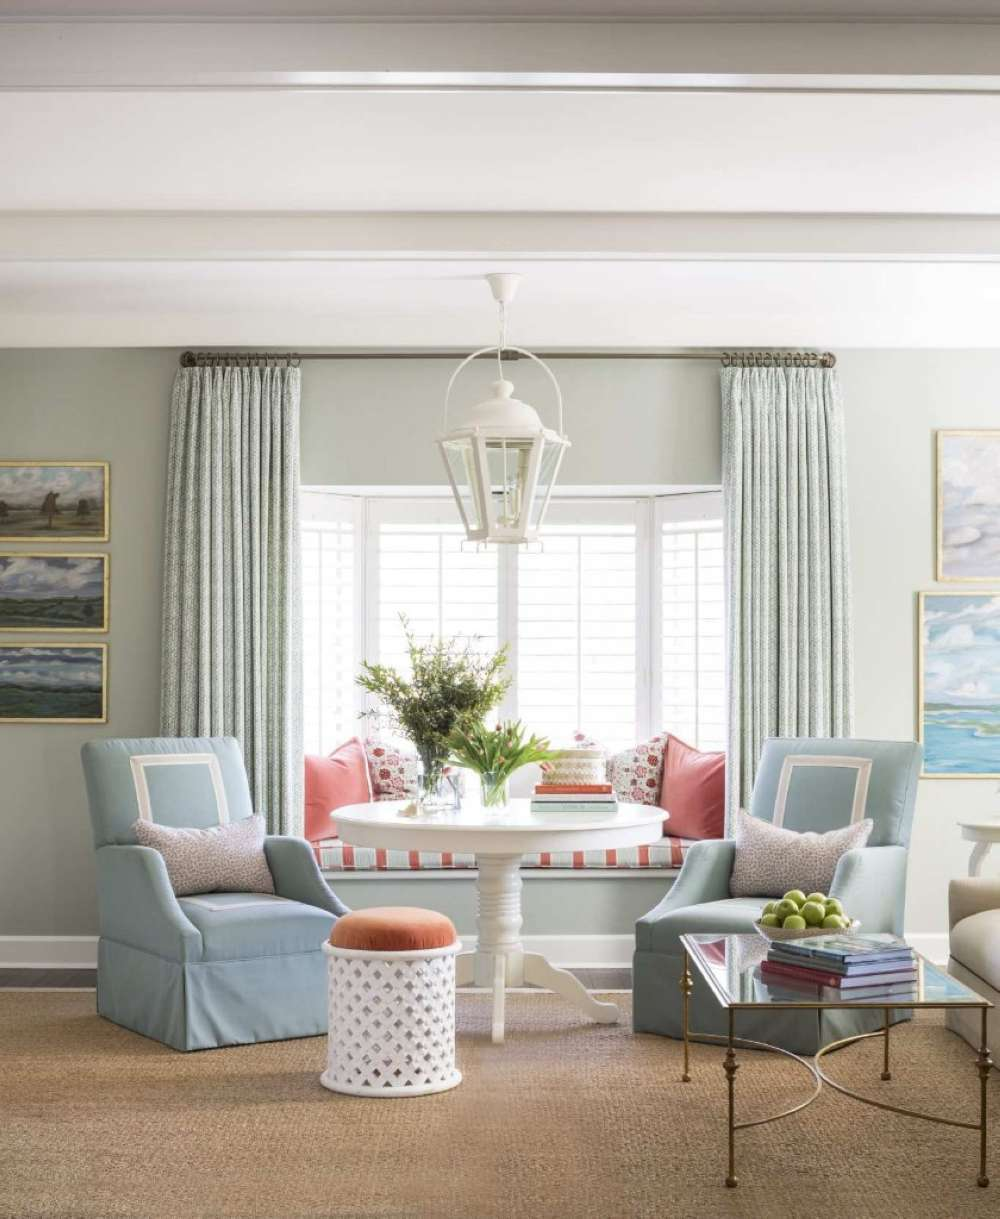 Krista-Lewis-Interior-Design-arkansas-Fashionably-Functional_001Optmized